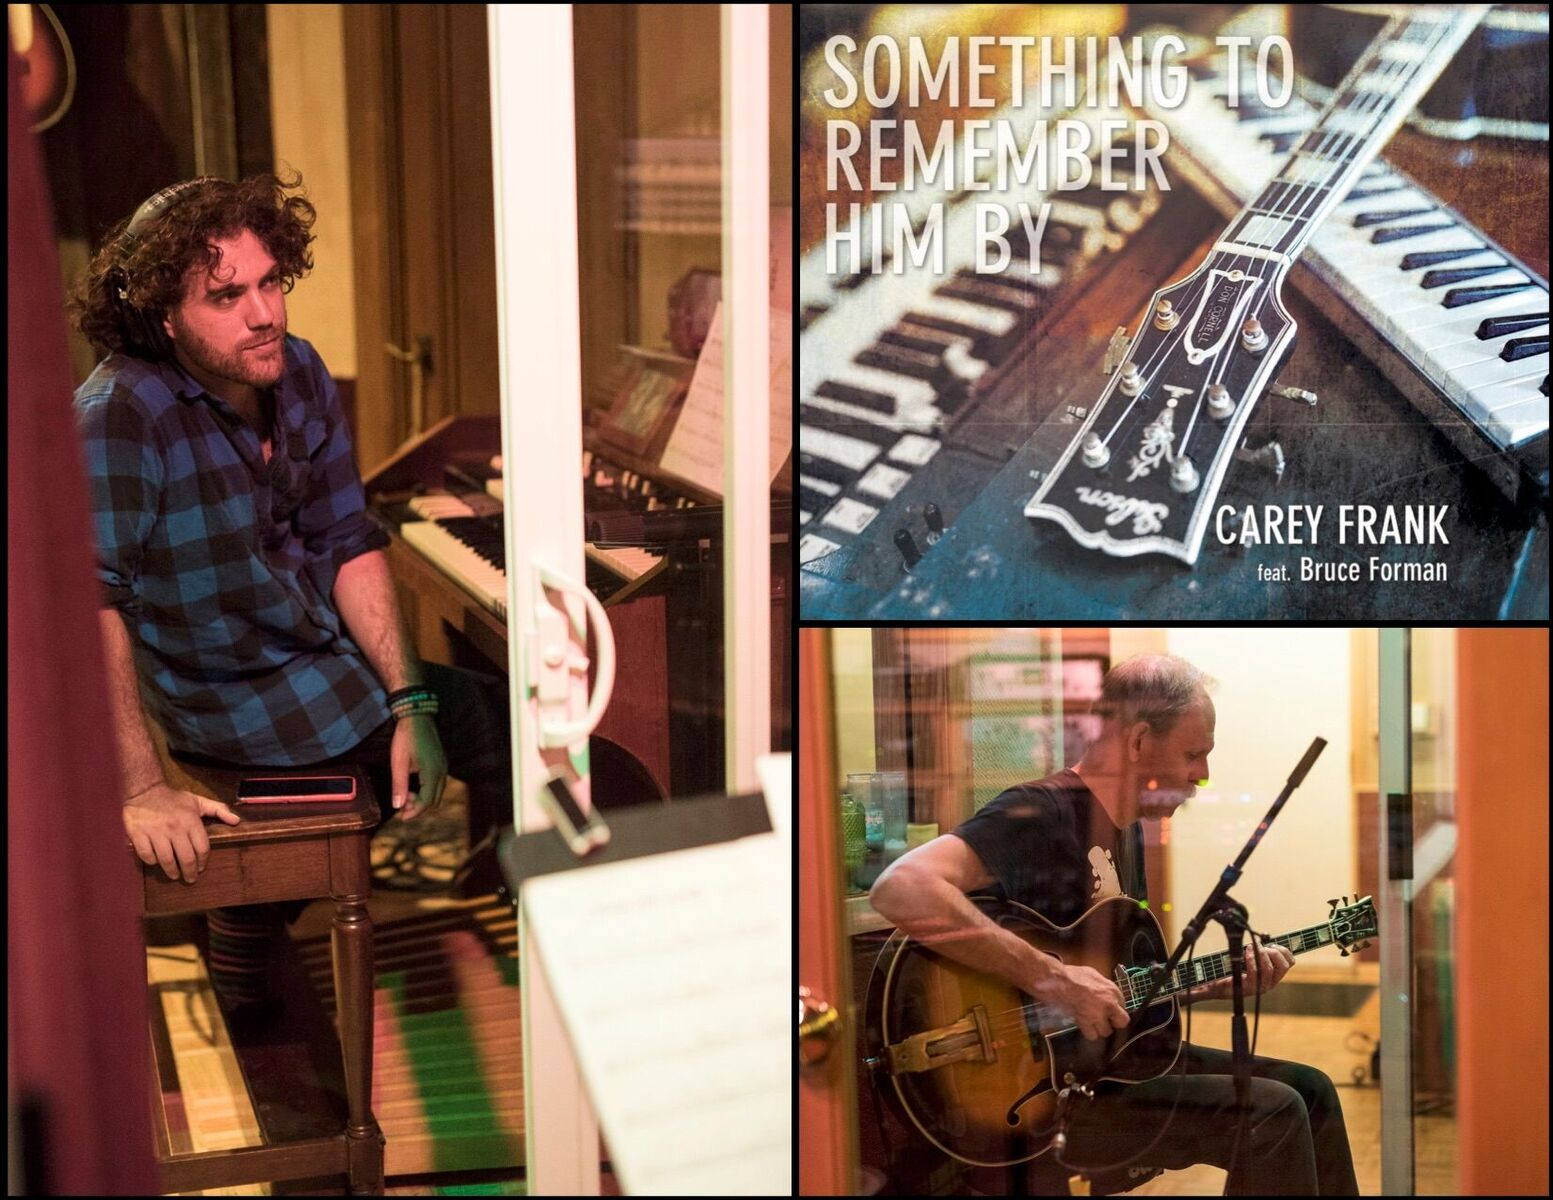 EXCLUSIVE PREMIERE | Carey Frank's Something To Remember Him By